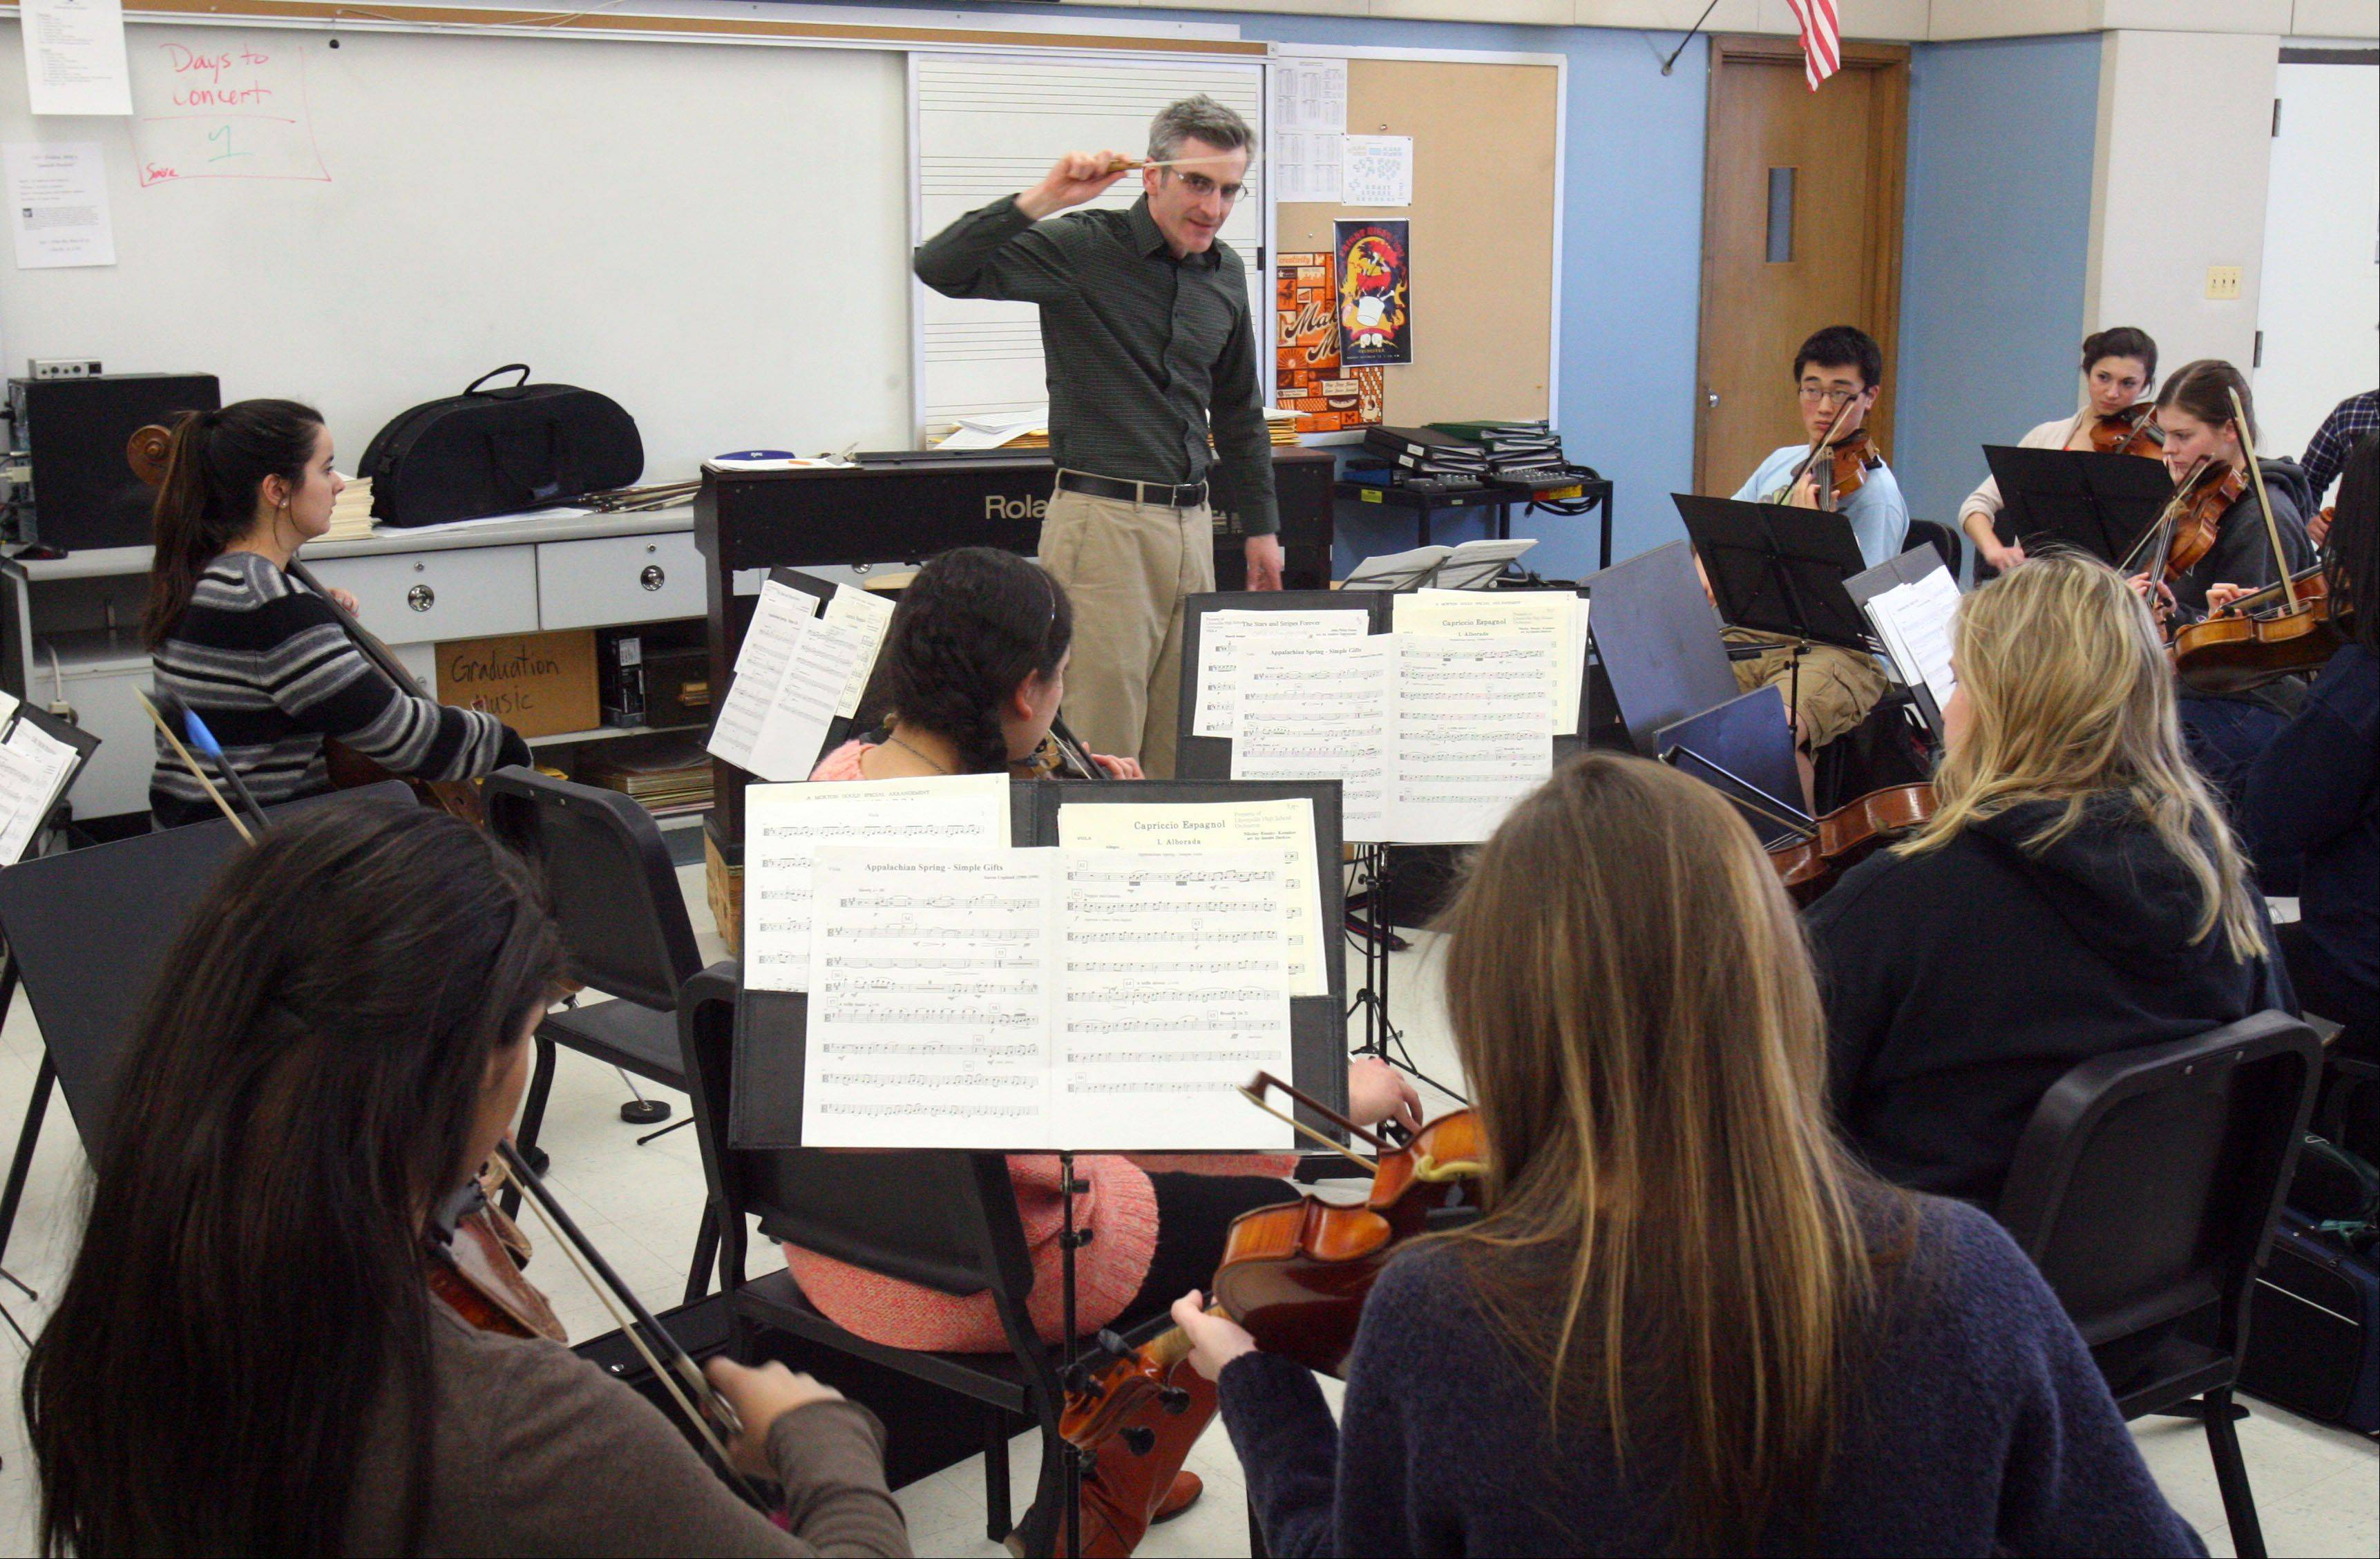 Libertyville High School Orchestra director Jeremy Marino leads musicians as they rehearse for their trip to Cuba. The school's musicians have performed around the world through the years, but this is the first trip to the small Caribbean nation, which has been at political odds with the United States for decades.